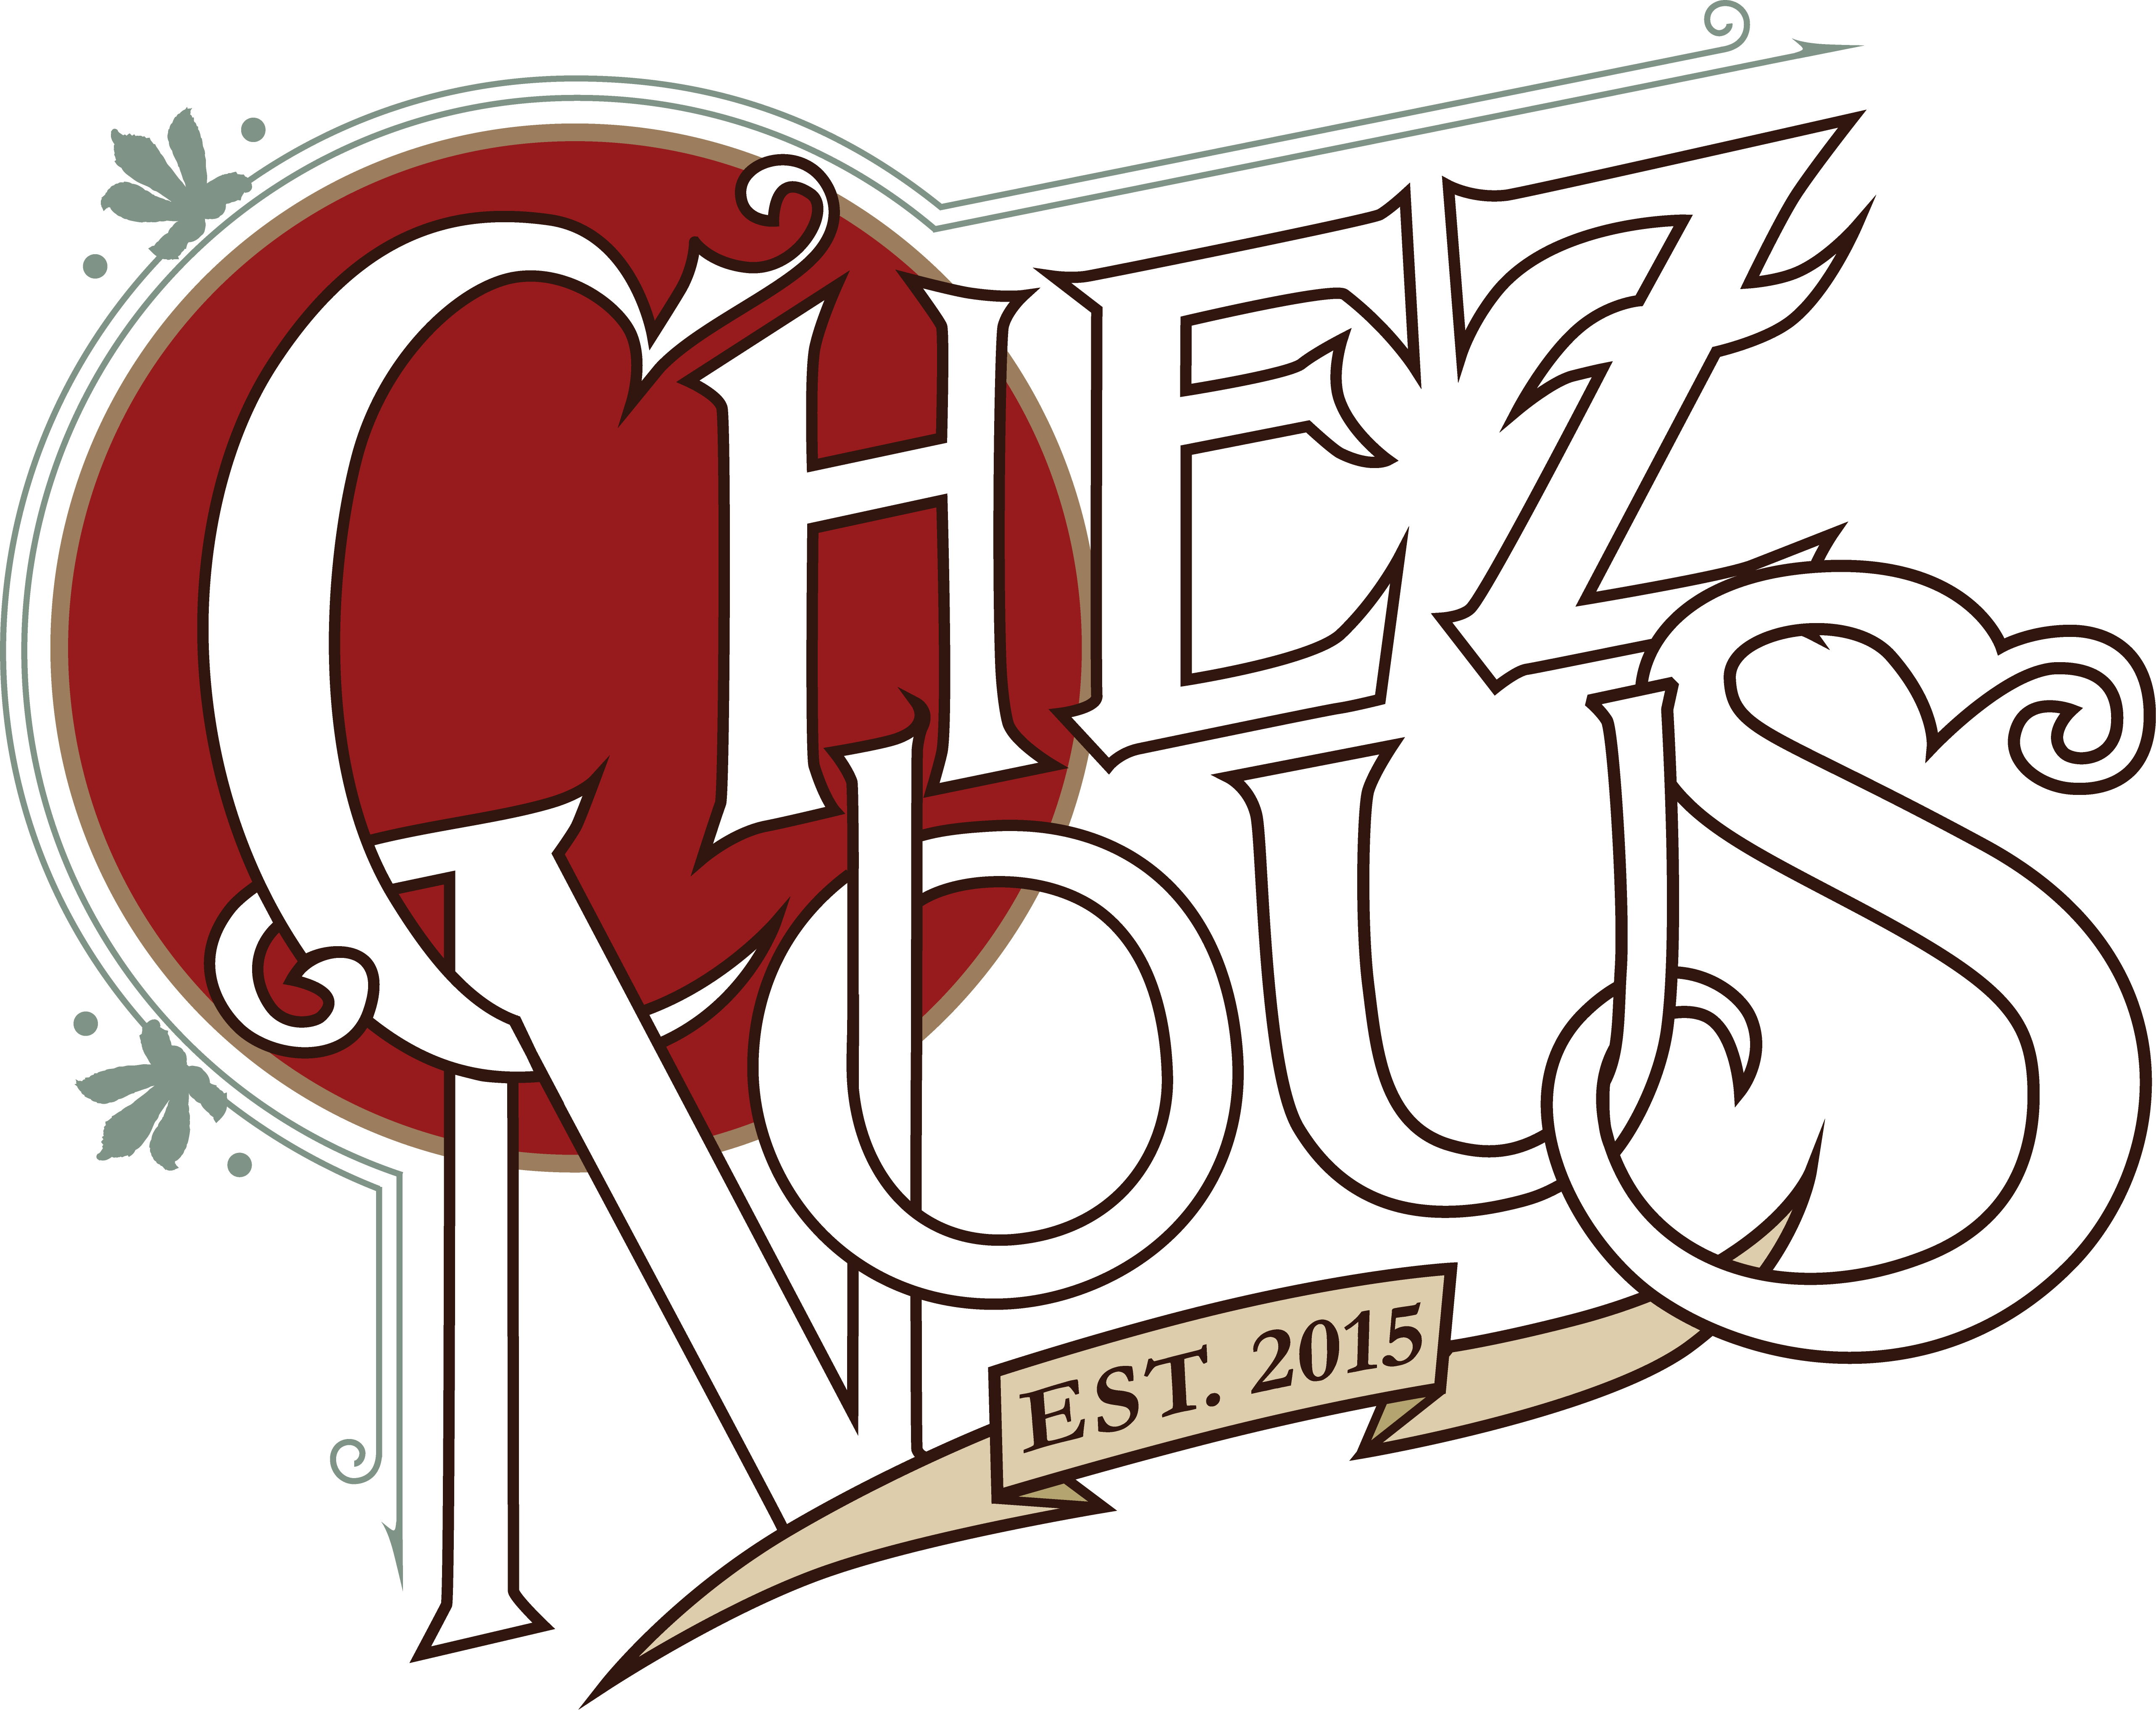 Chez nous simply. France clipart bistro french